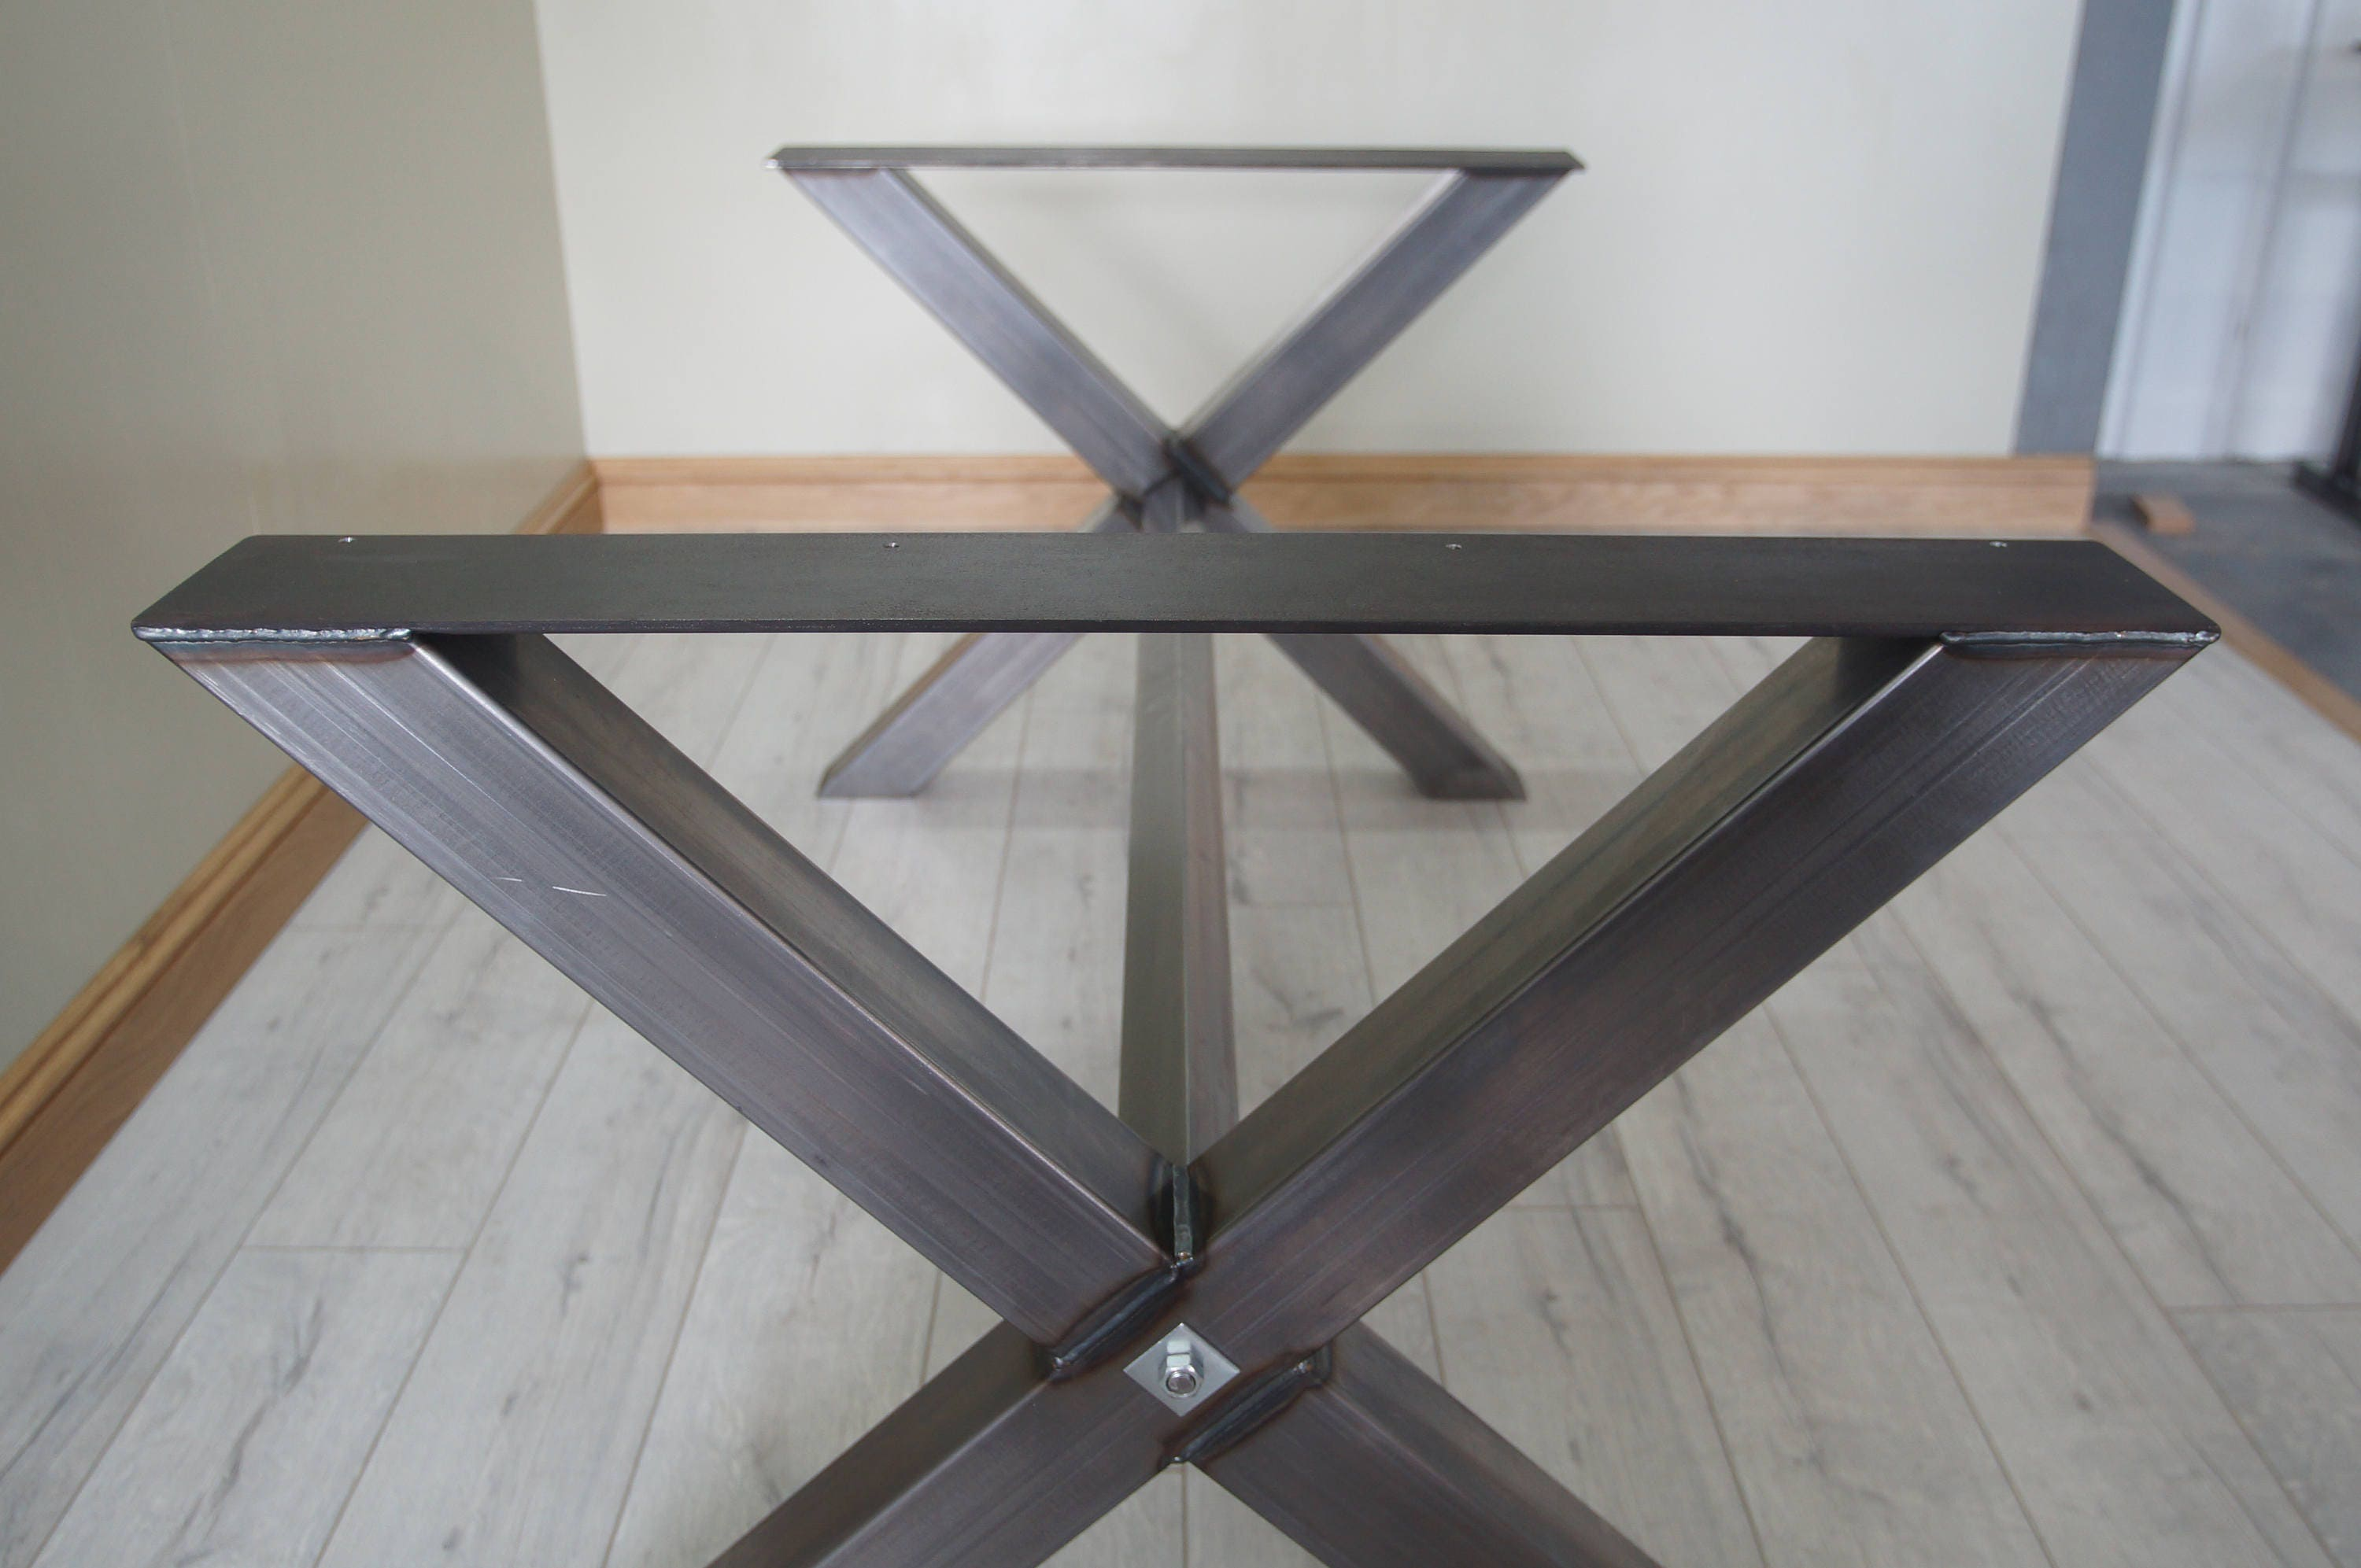 X Shaped Table Bench Legs With Center Bar Customisable